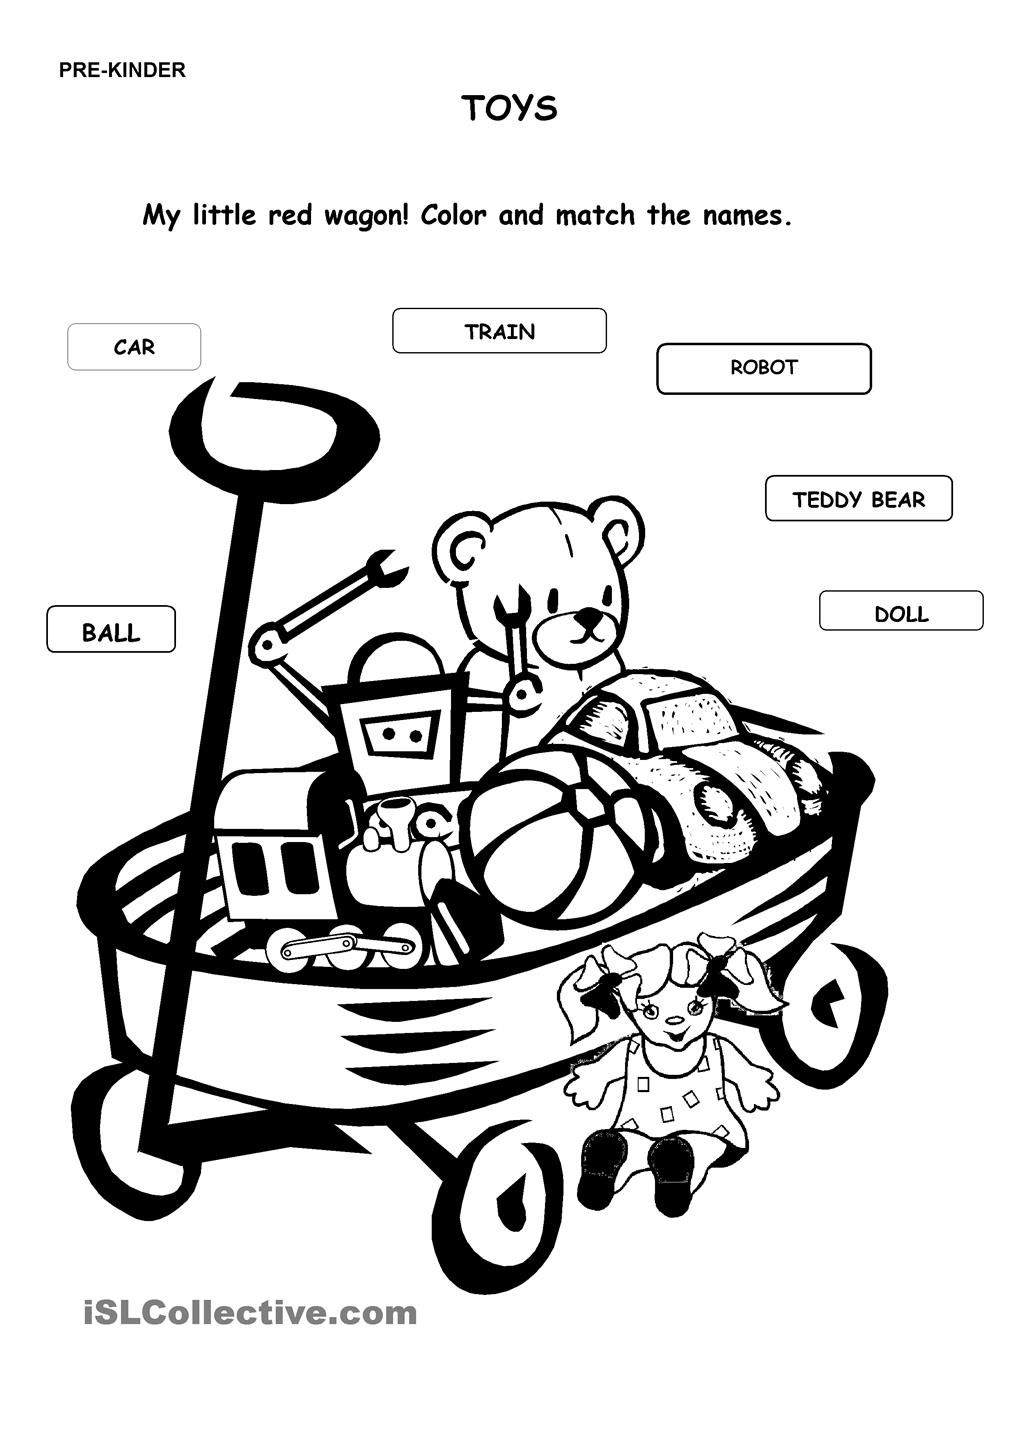 Match The Words To The Pictures Kids Math Worksheets Preschool Activities Worksheets For Kids [ 1440 x 1018 Pixel ]